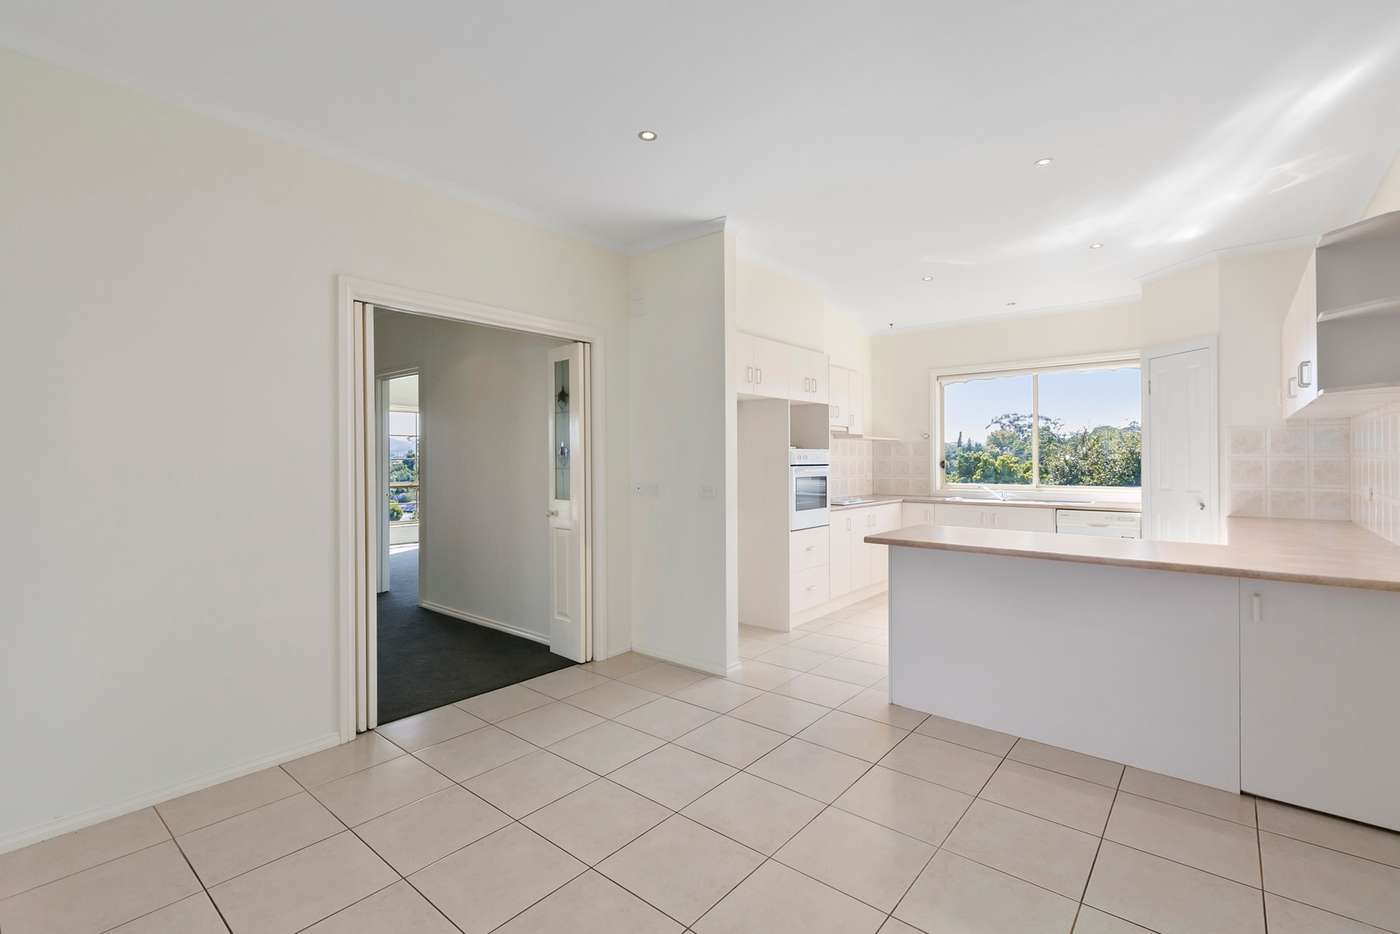 Sixth view of Homely house listing, 21 East Street, Yea VIC 3717